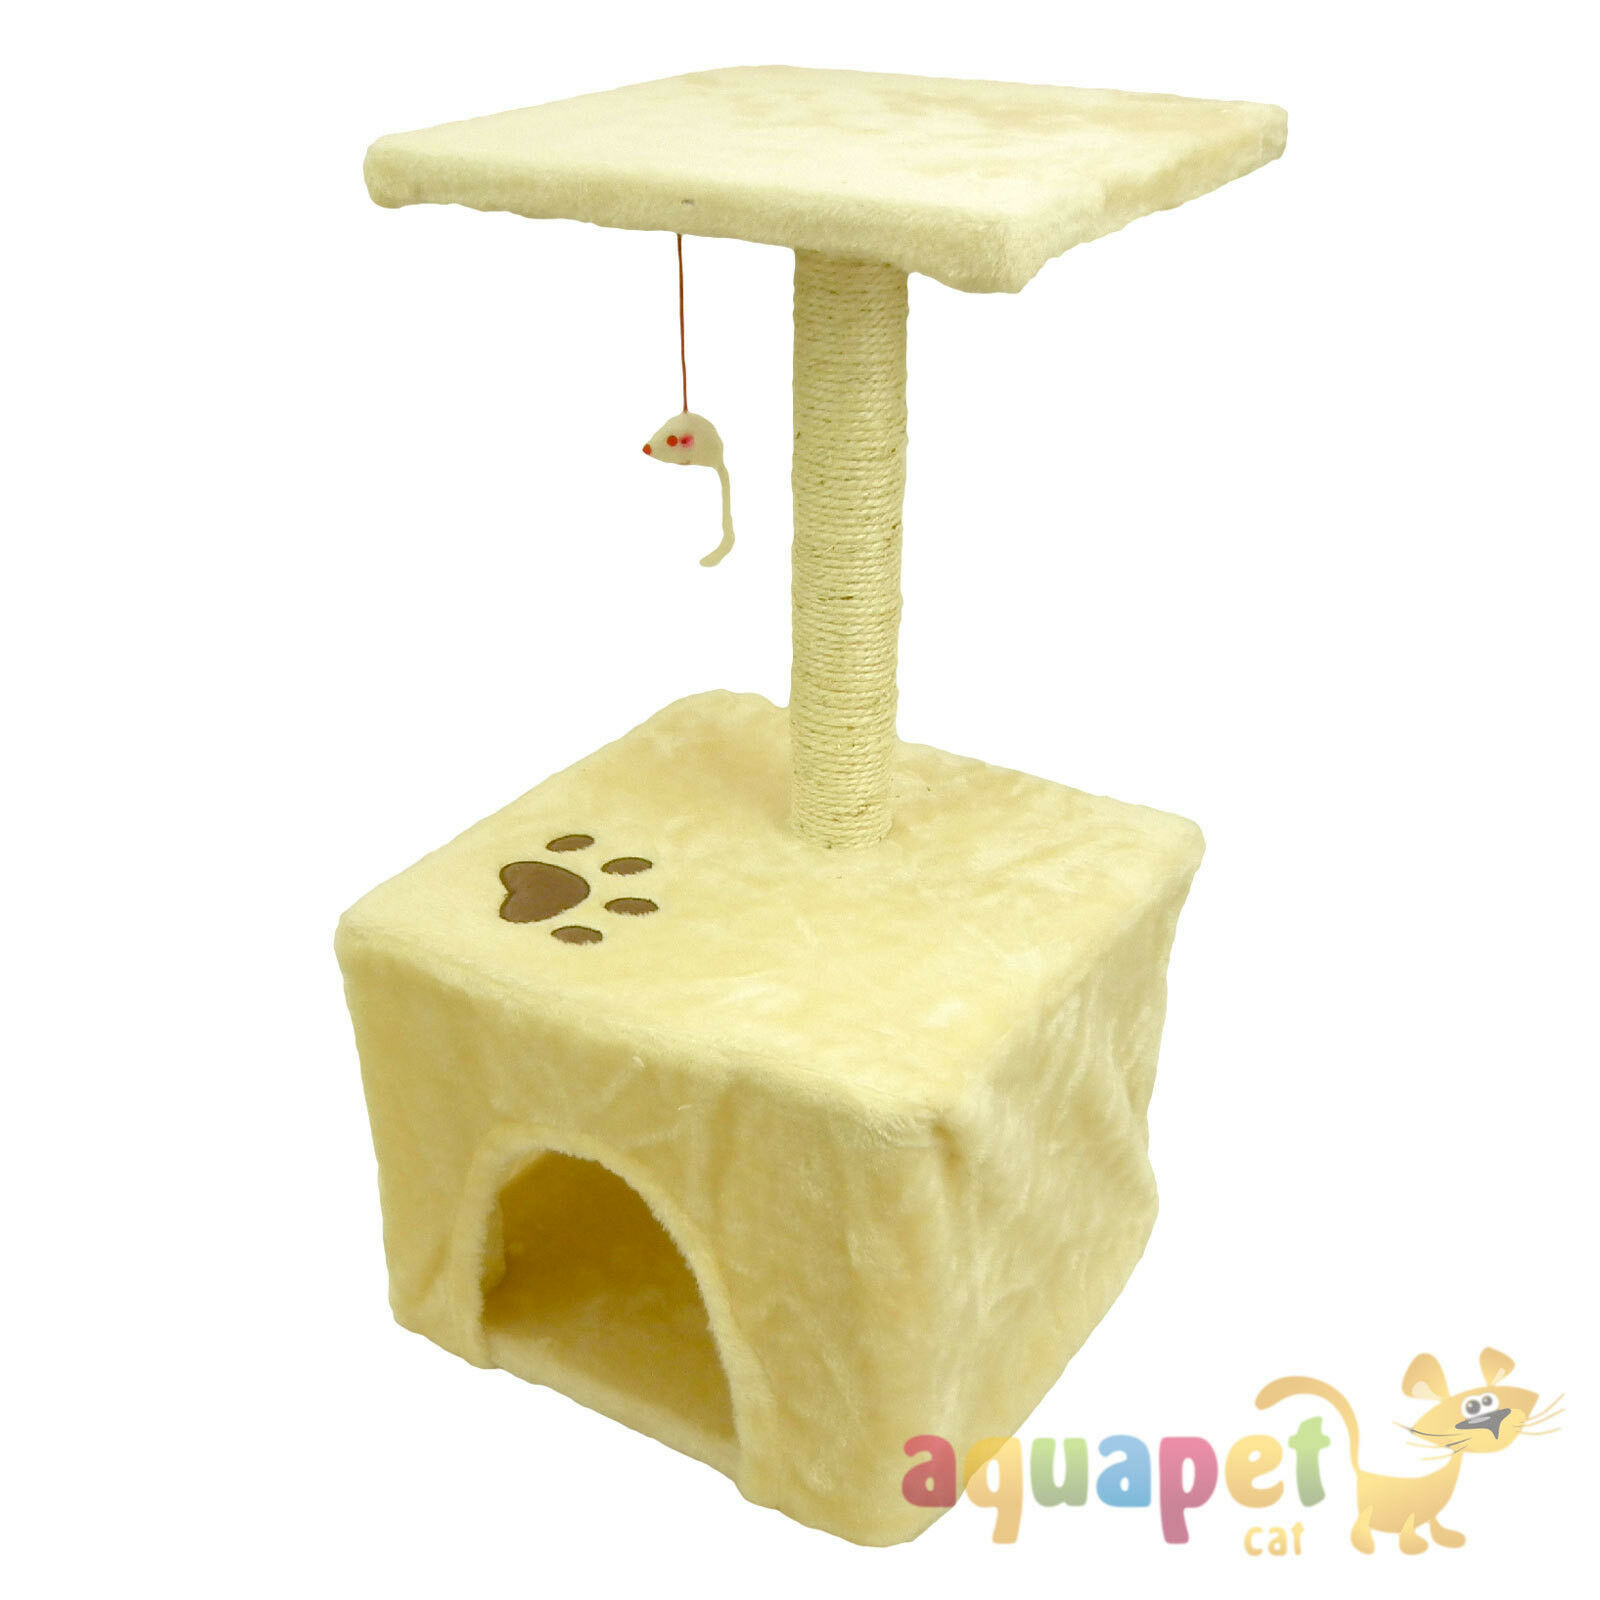 Cat Tree with House, Sisal Pole, Platform and Mouse Toy